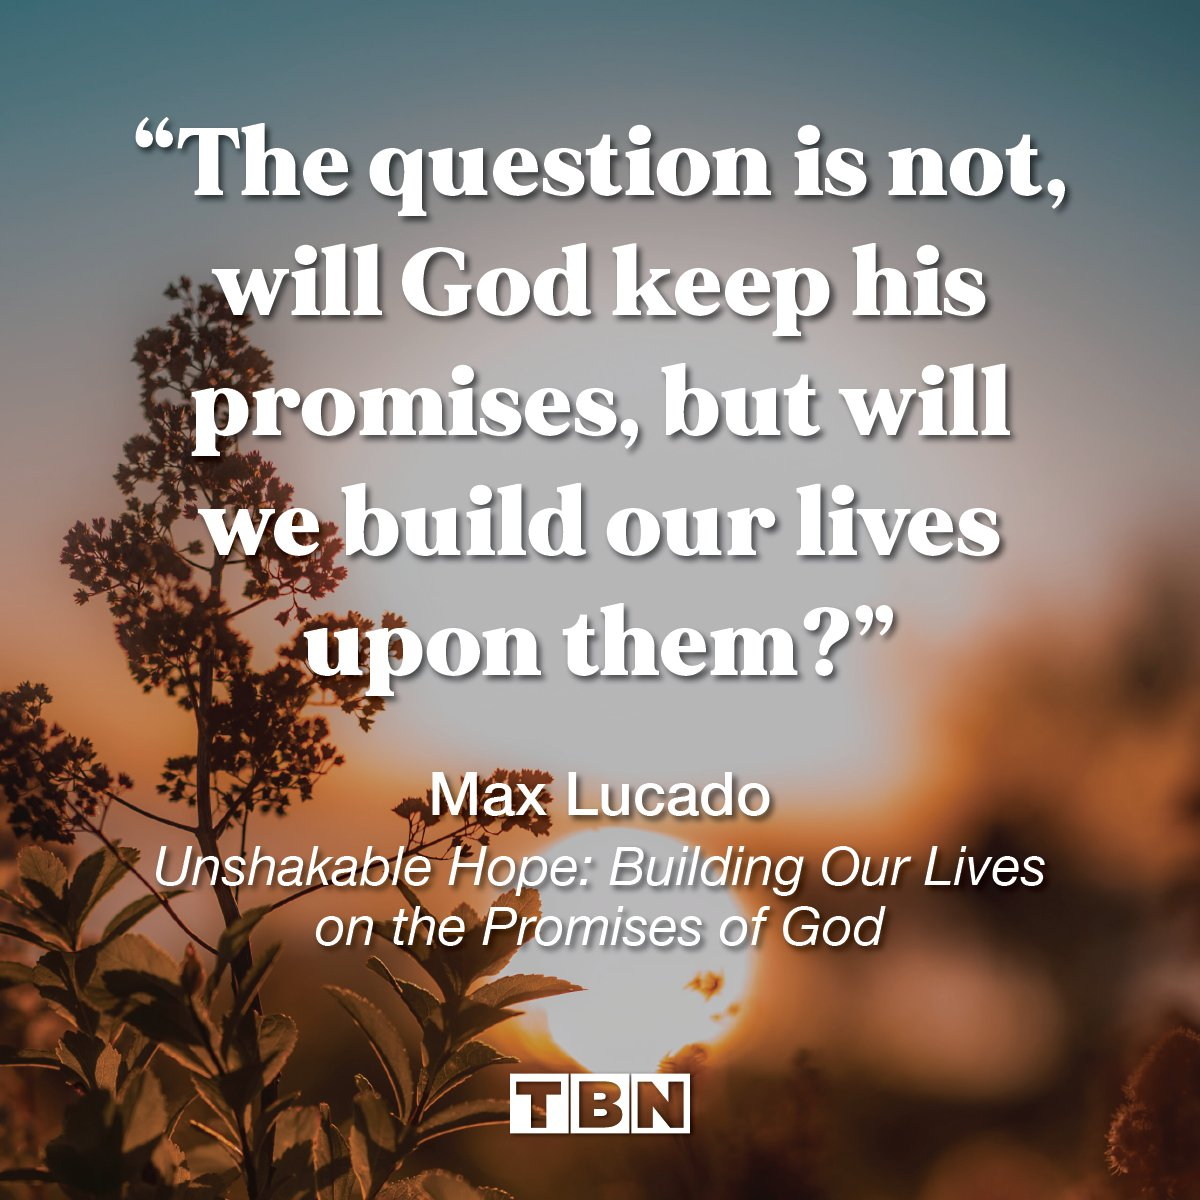 """""""The question is not, will God keep His promises, but will we build our lives upon them?"""" - Max Lucado, Unshakable Hope: Building Our Lives on the Promises of God  #QOTD #quoteoftheday https://t.co/SSikQX3VAM"""